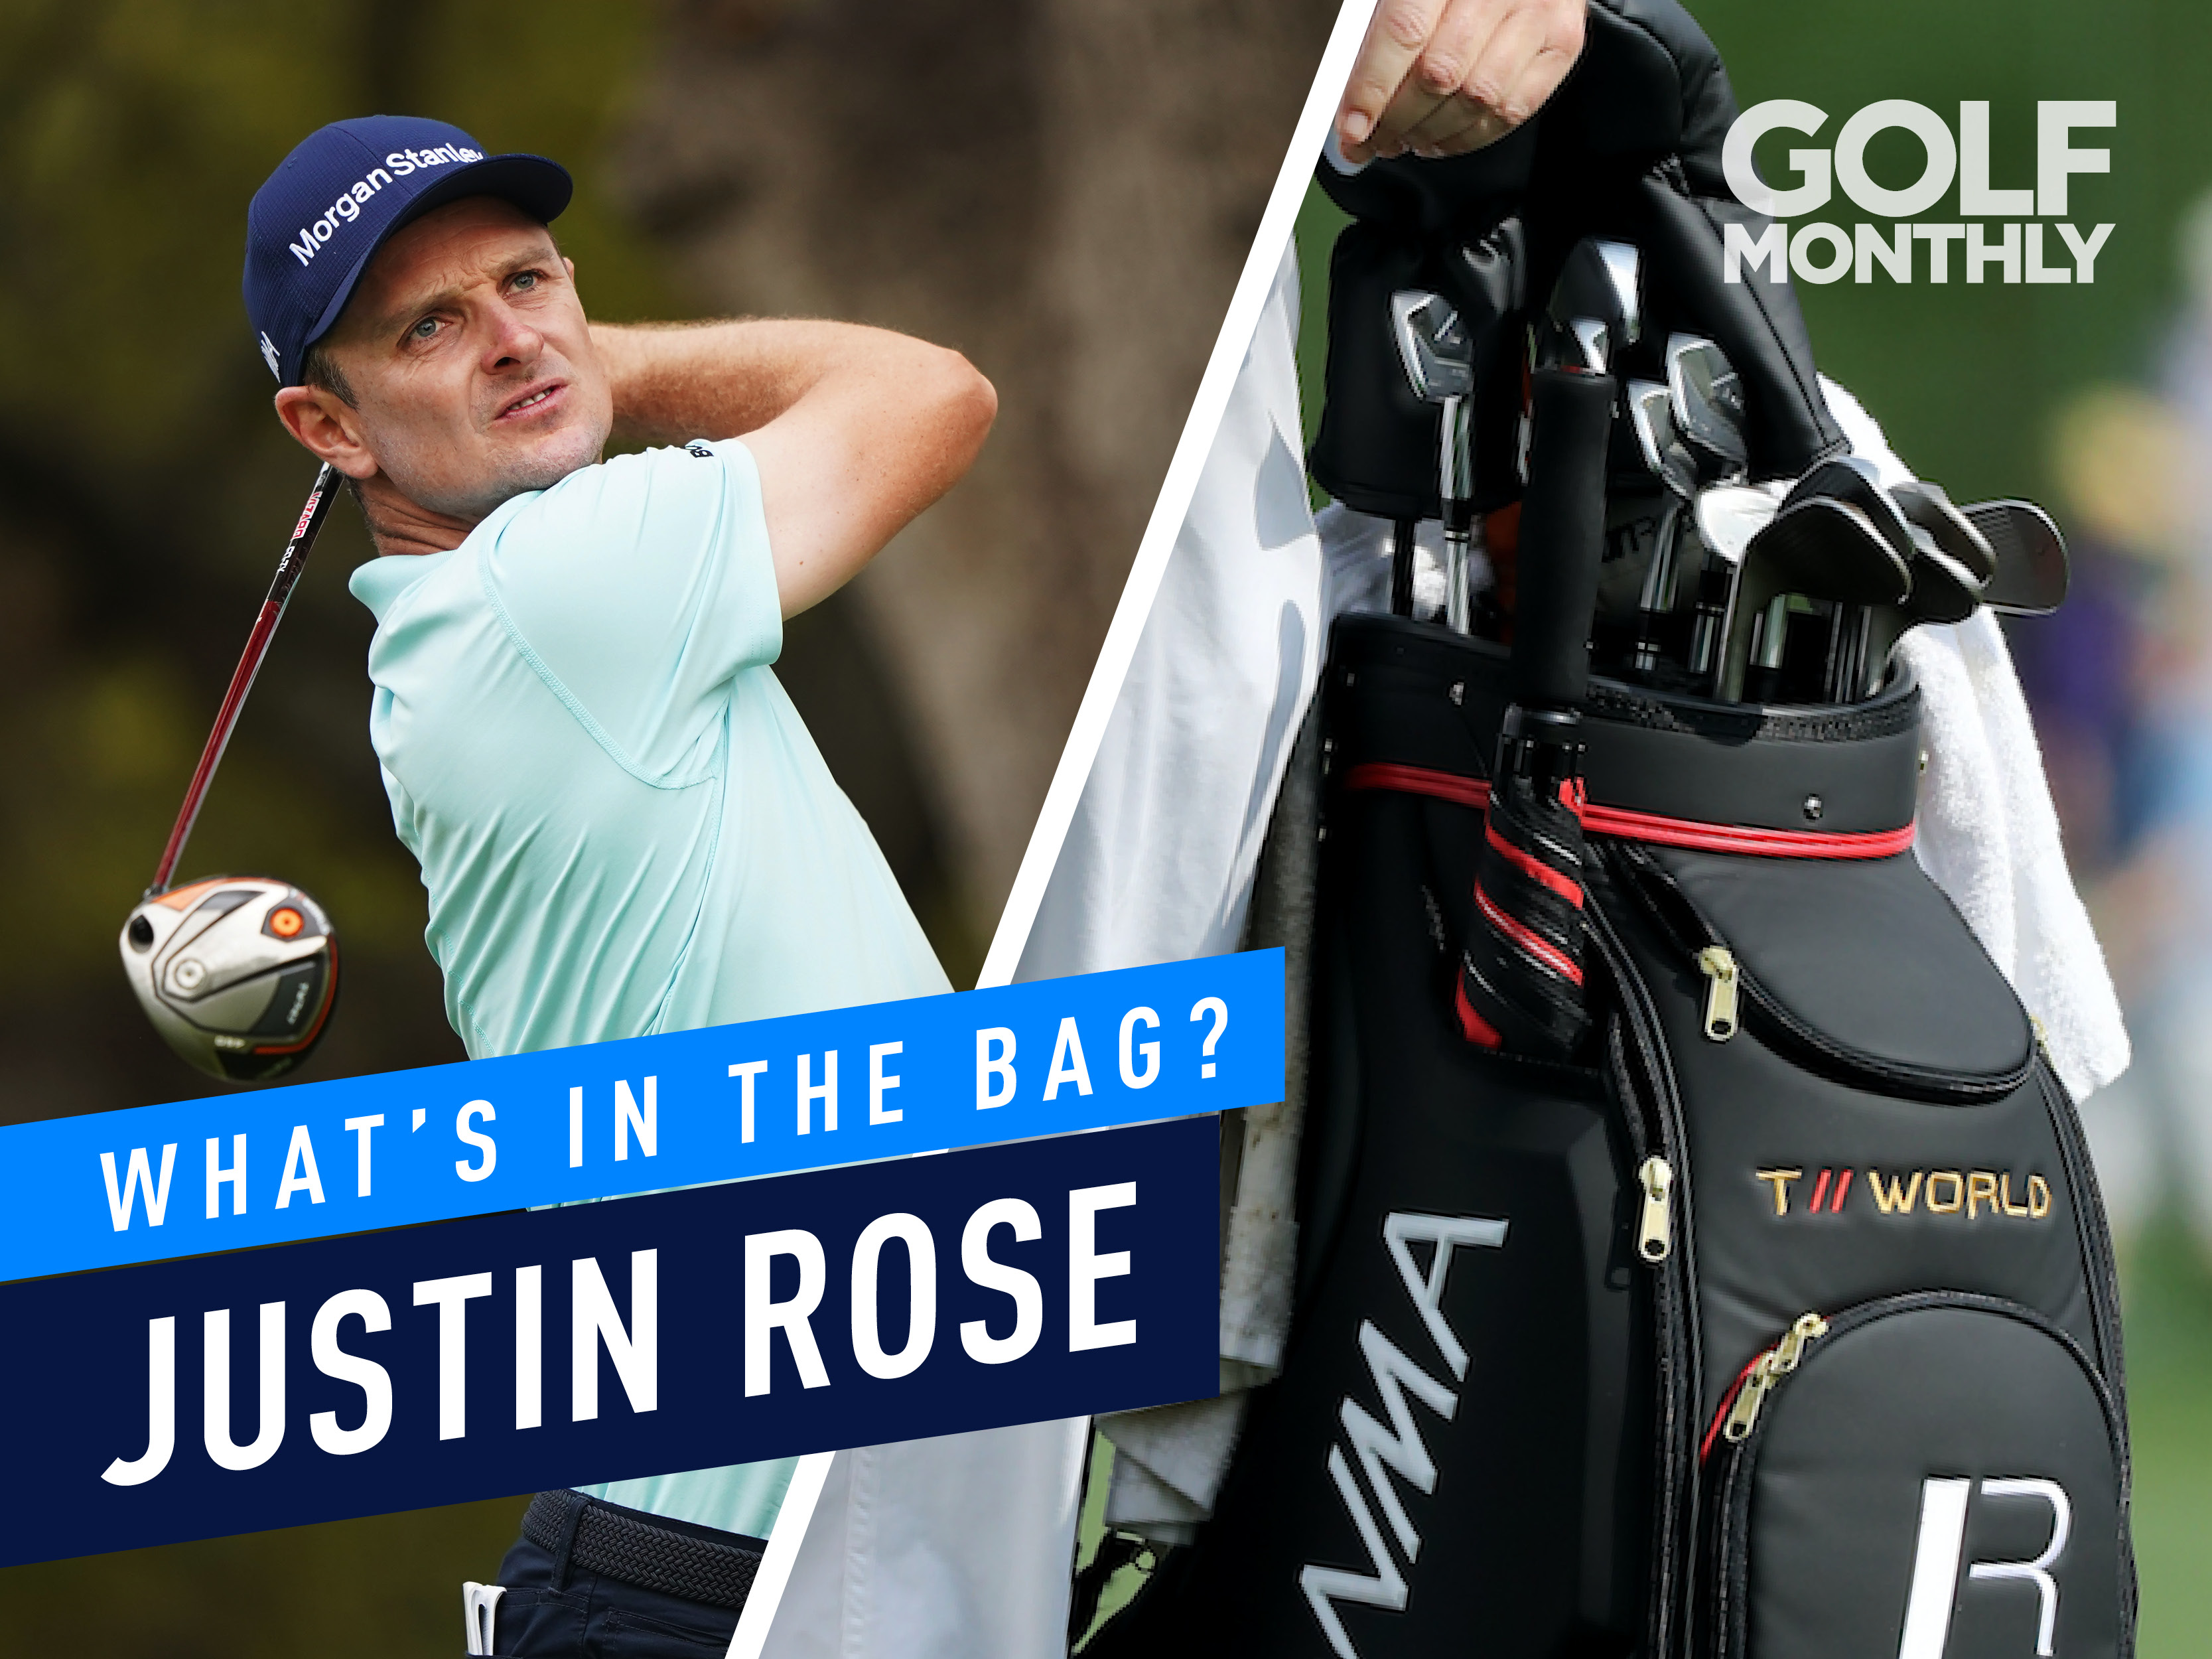 20 Things You Didnt Know About Play >> 20 Things You Didn T Know About Justin Rose 2013 Us Open